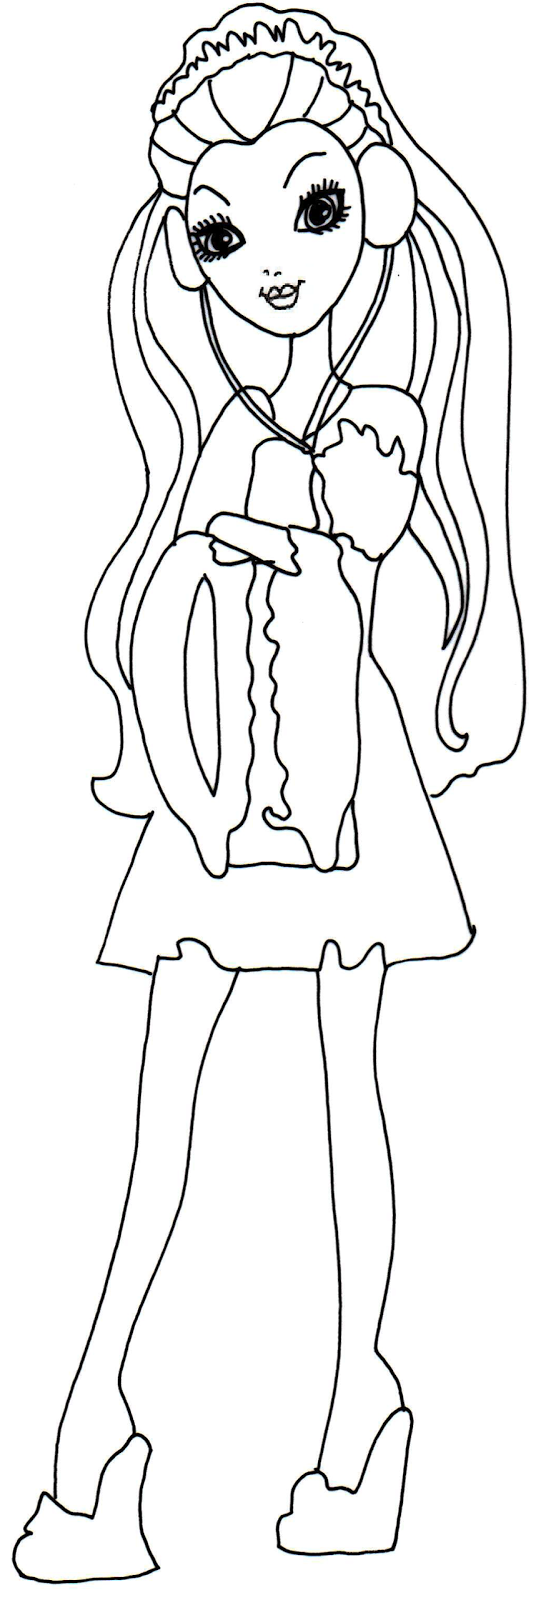 Ever After High Madeline Hatter Coloring Pages at